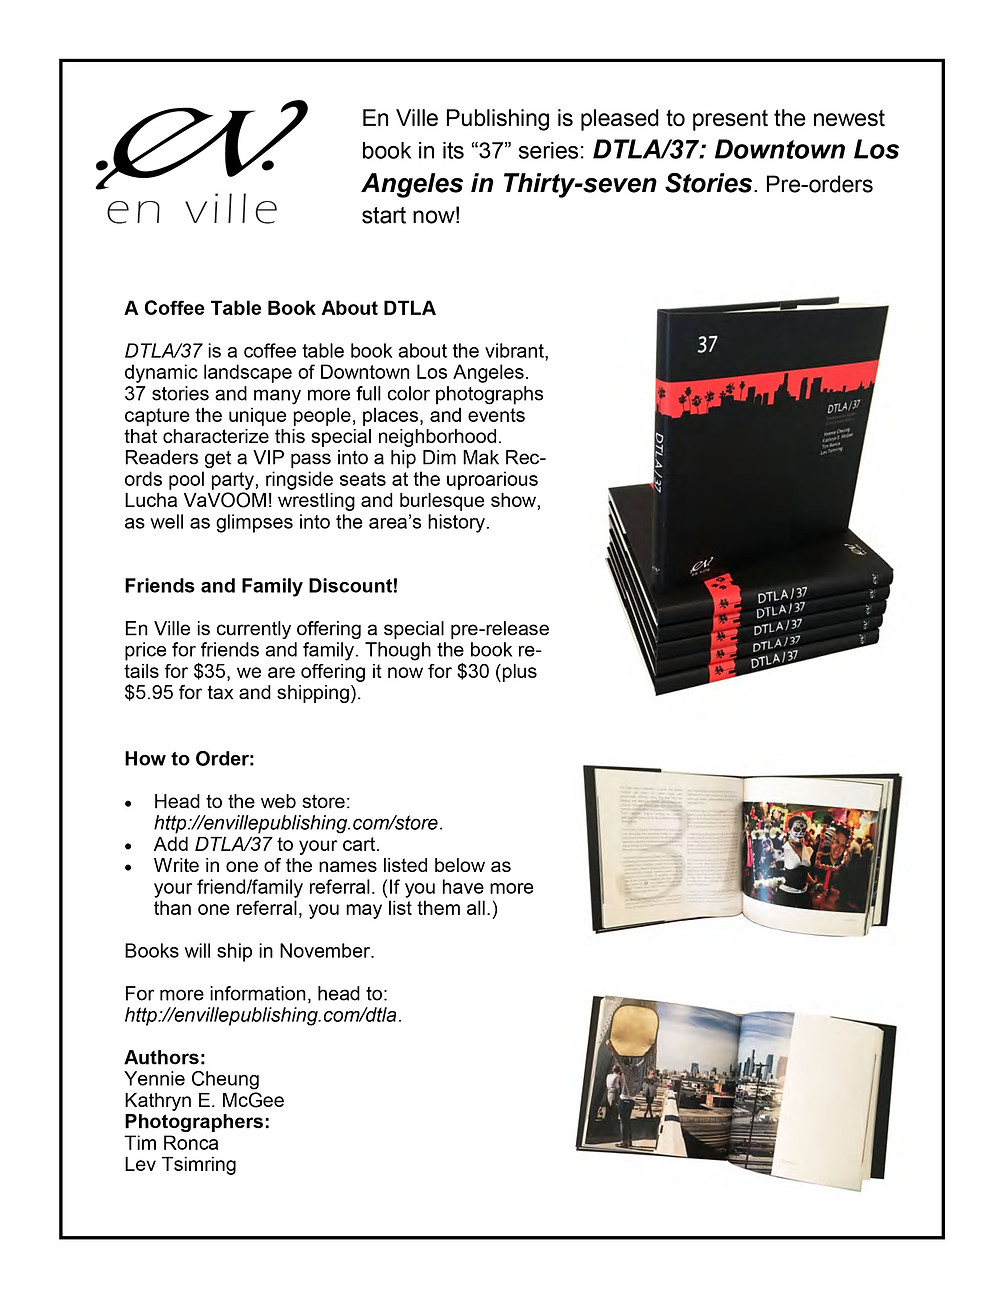 You can now pre-order copies of DTLA/37! Head to http://www.envillepublishing.com/store. Books ship in November.